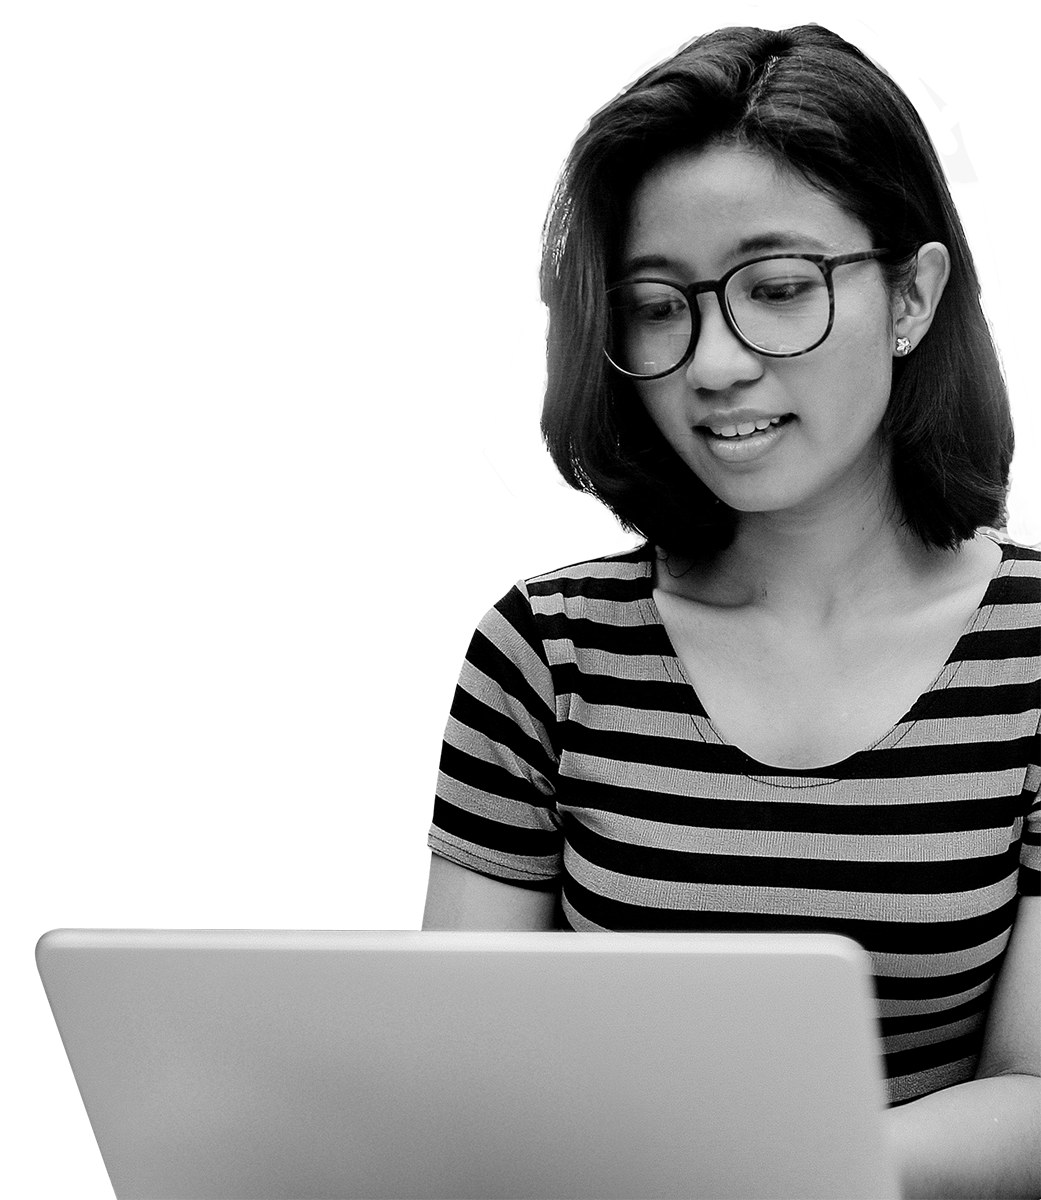 Asian woman with glasses sitting in front of laptop